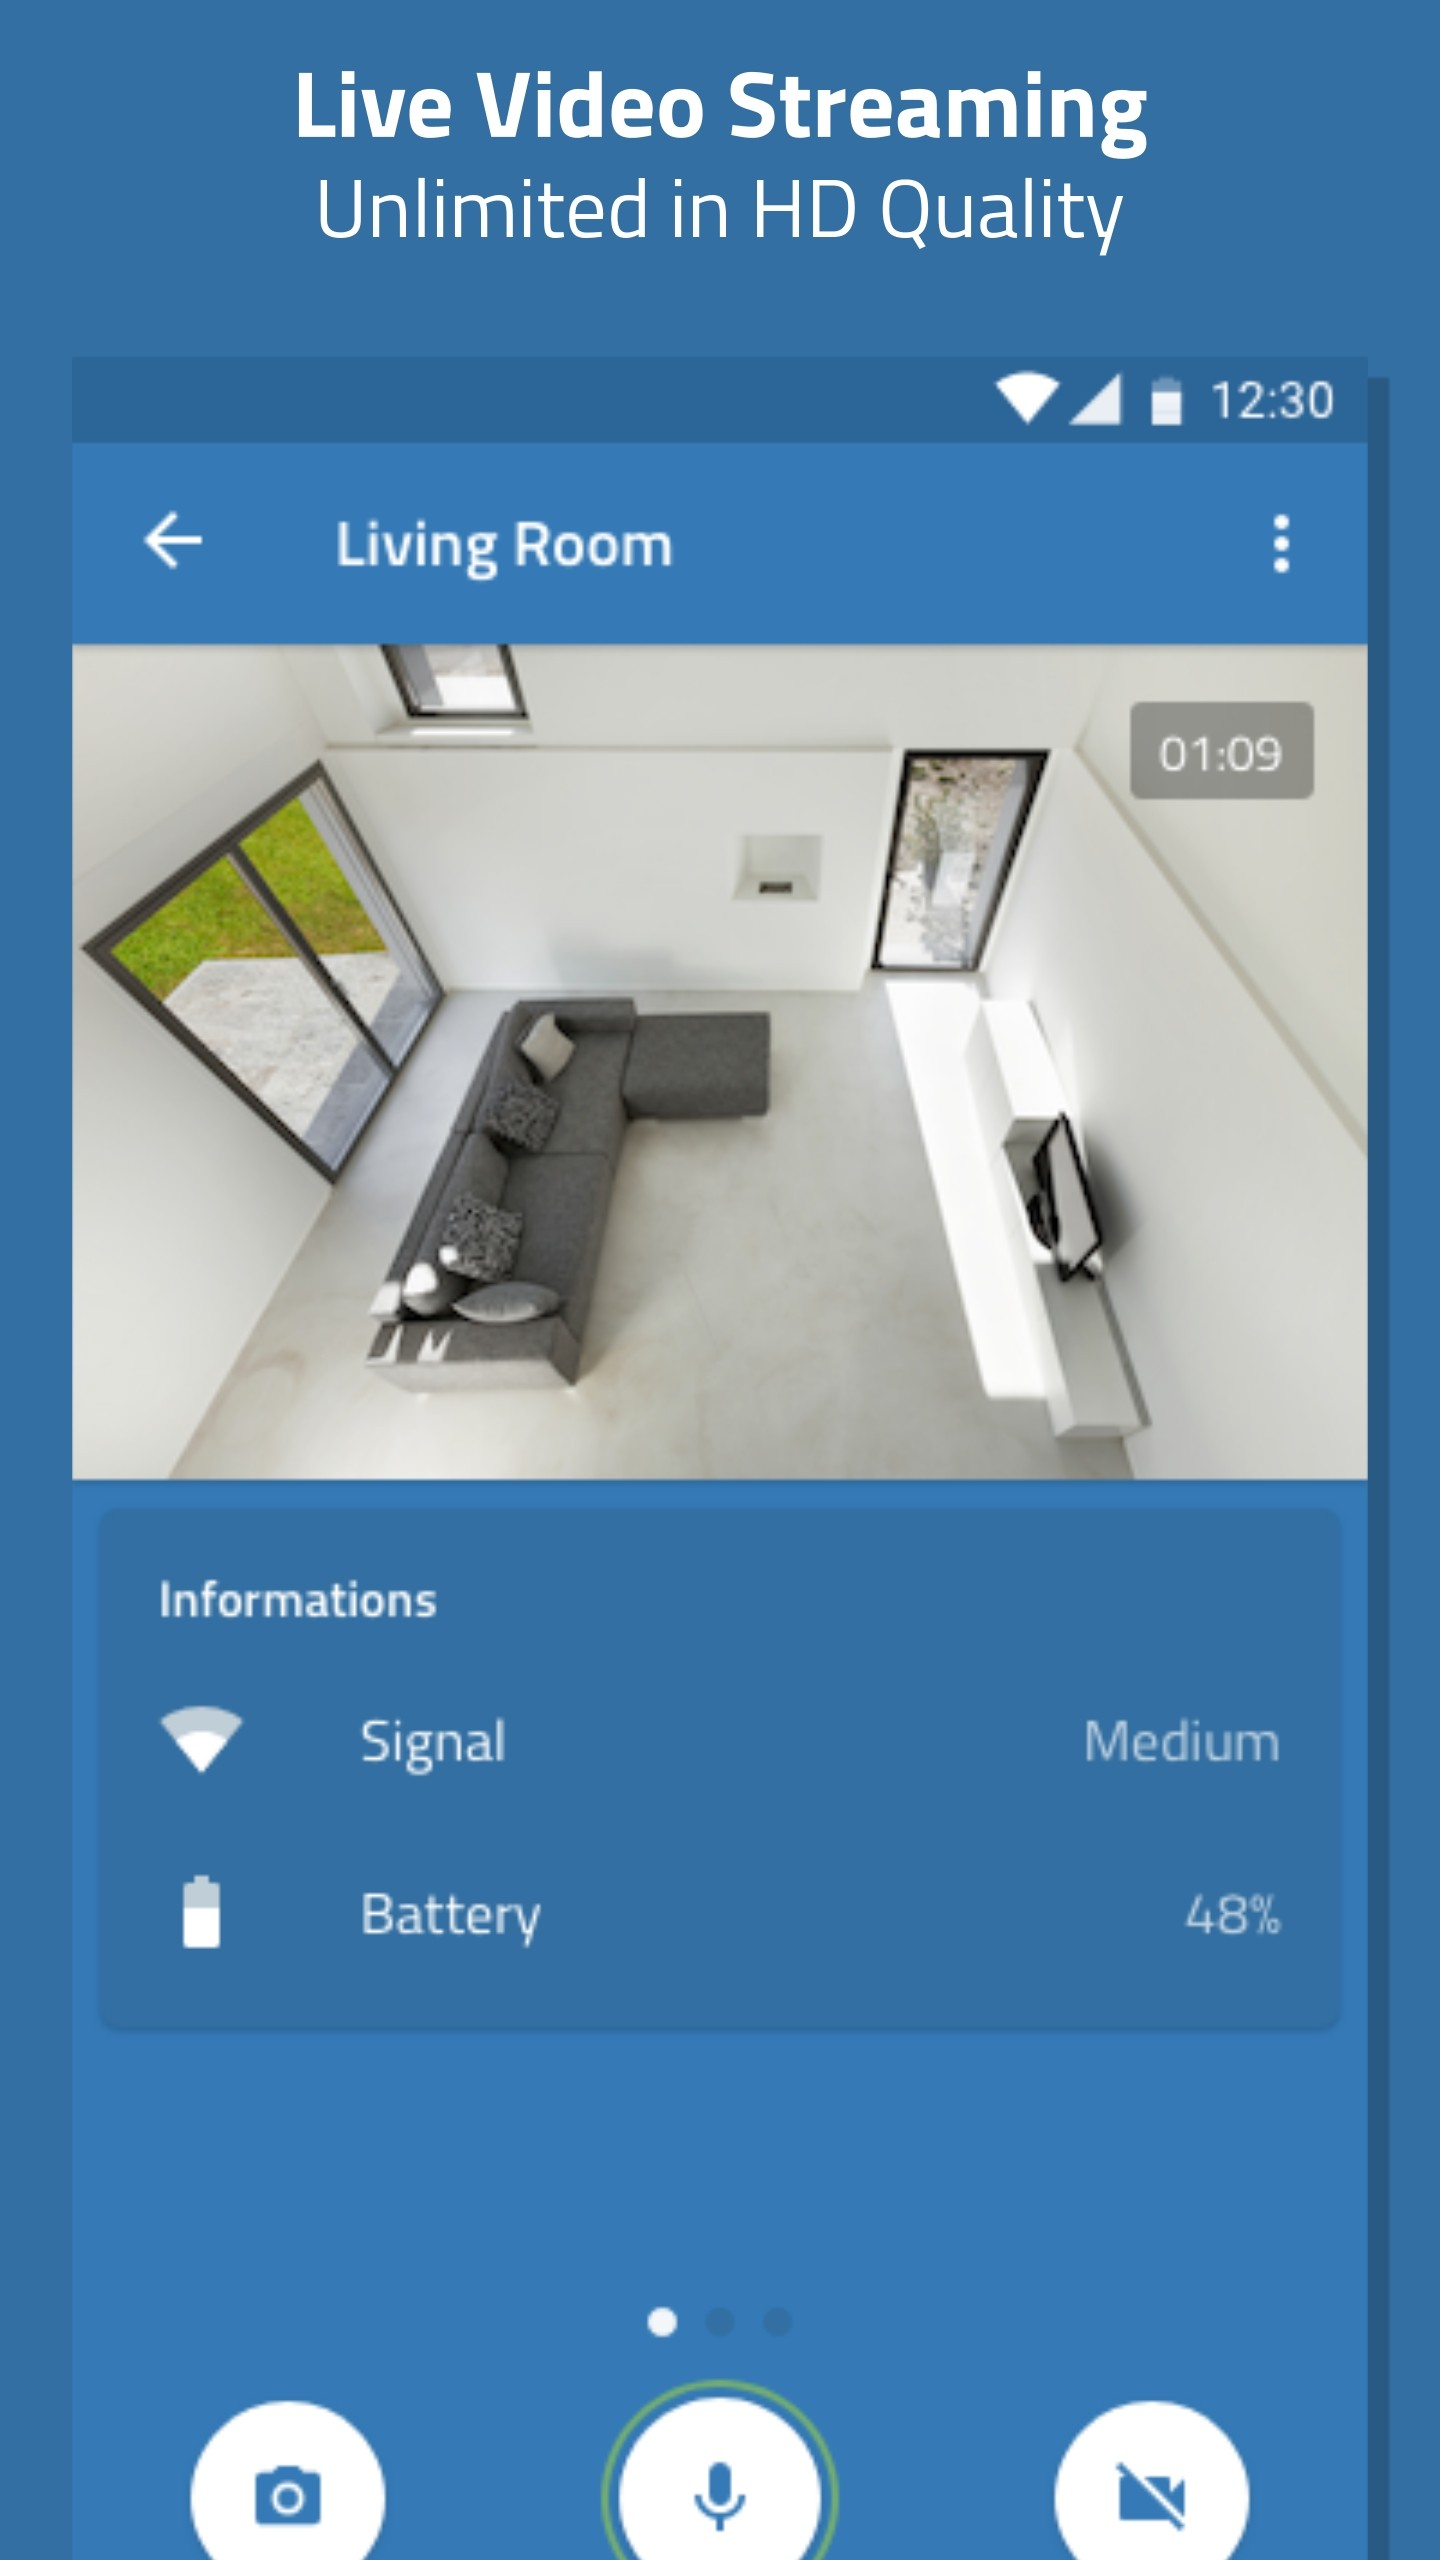 Turn your old Android phone into a Free Home Security Camera